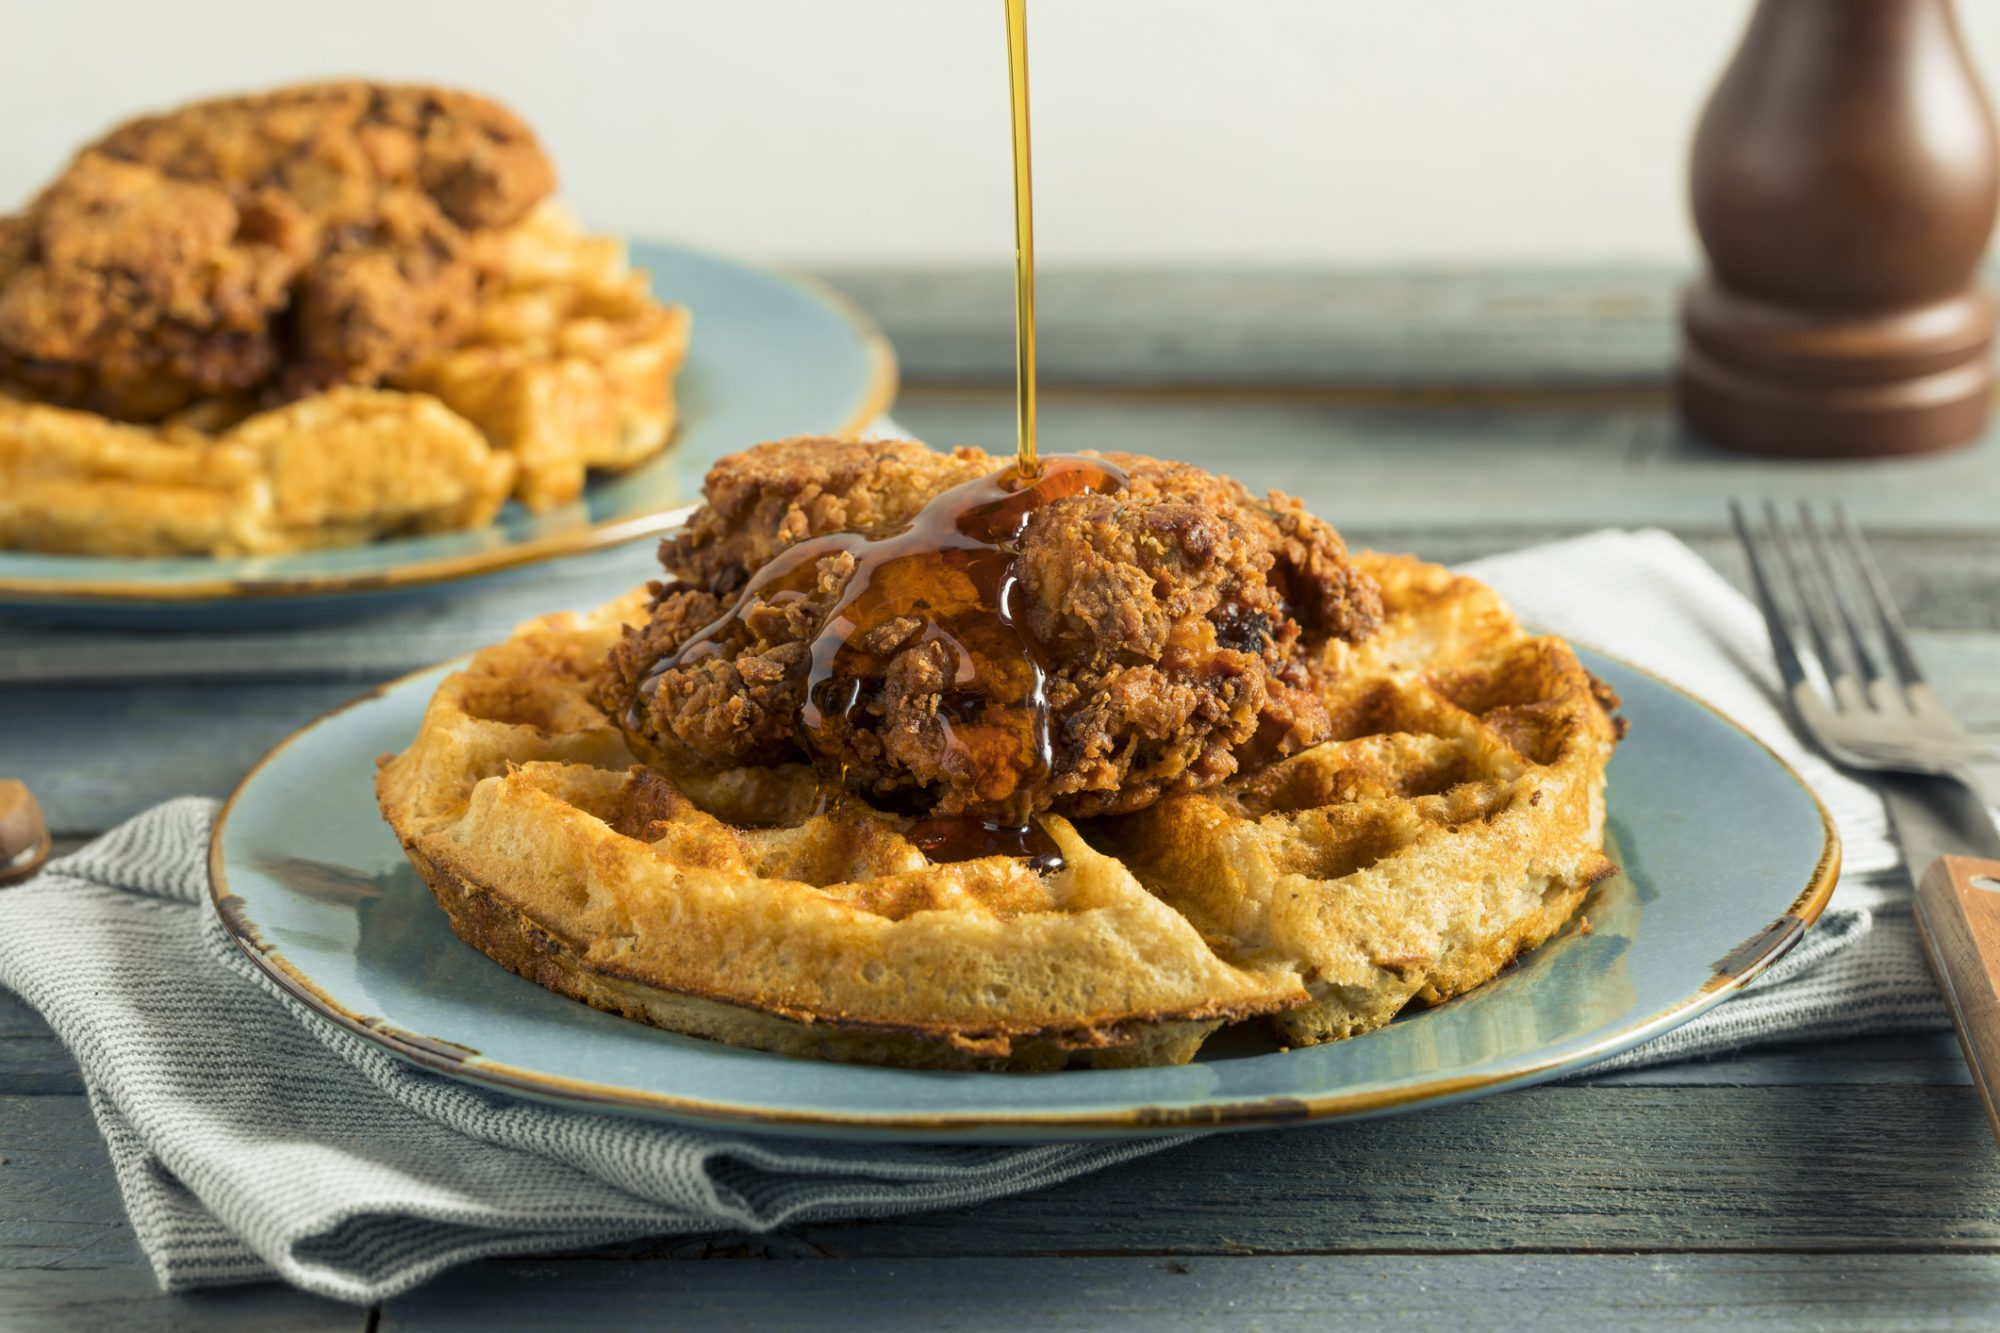 Chicken and Waffles Cereal is Better than Going to Brunch